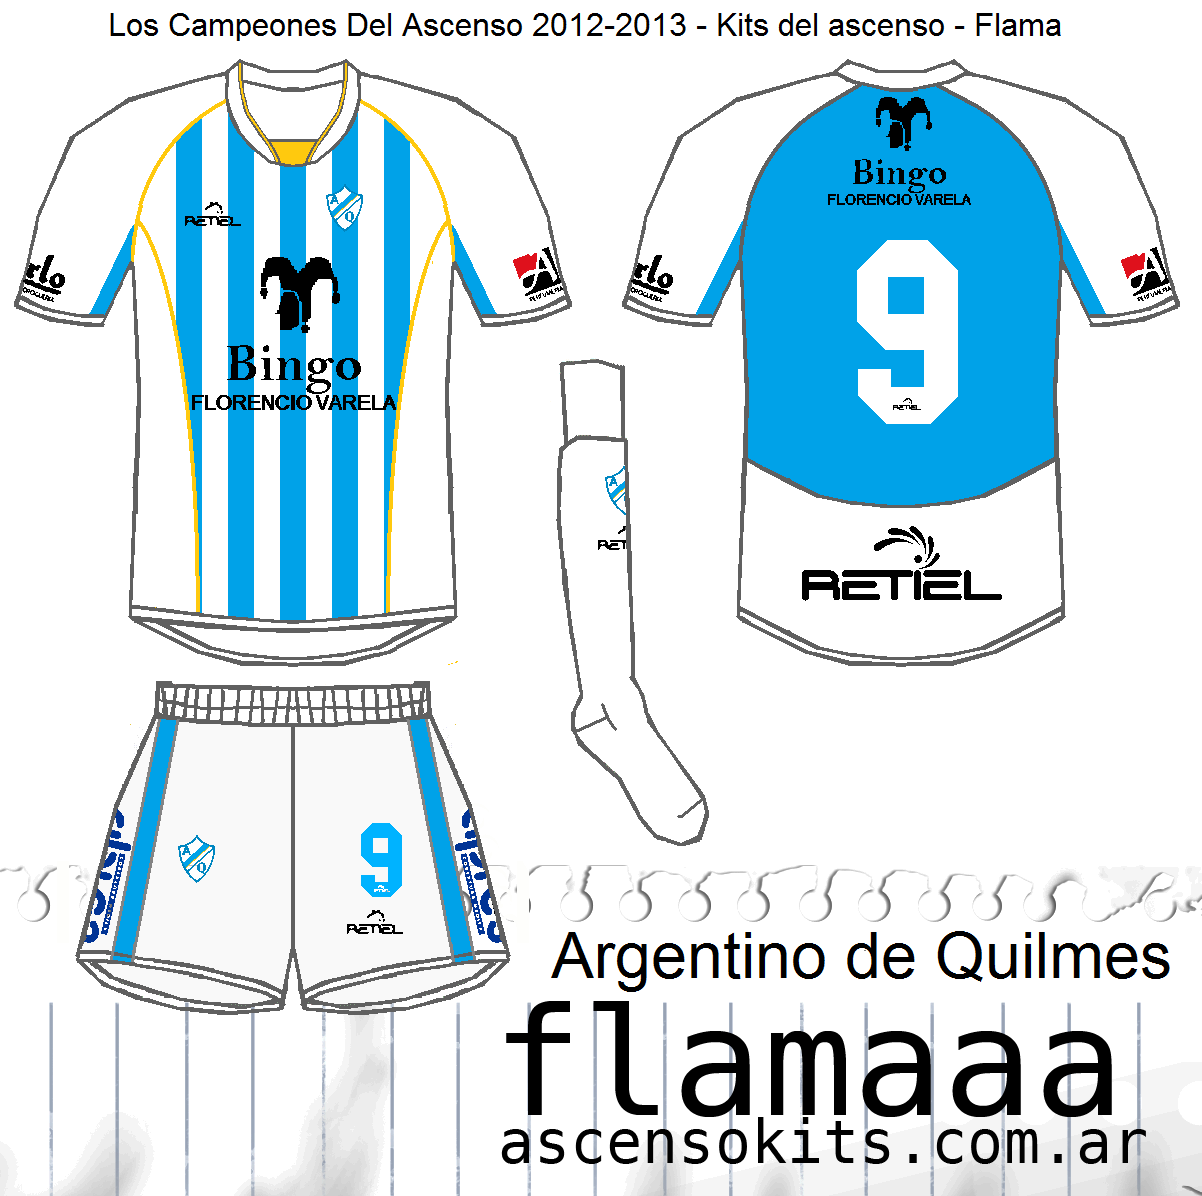 Kits del Ascenso